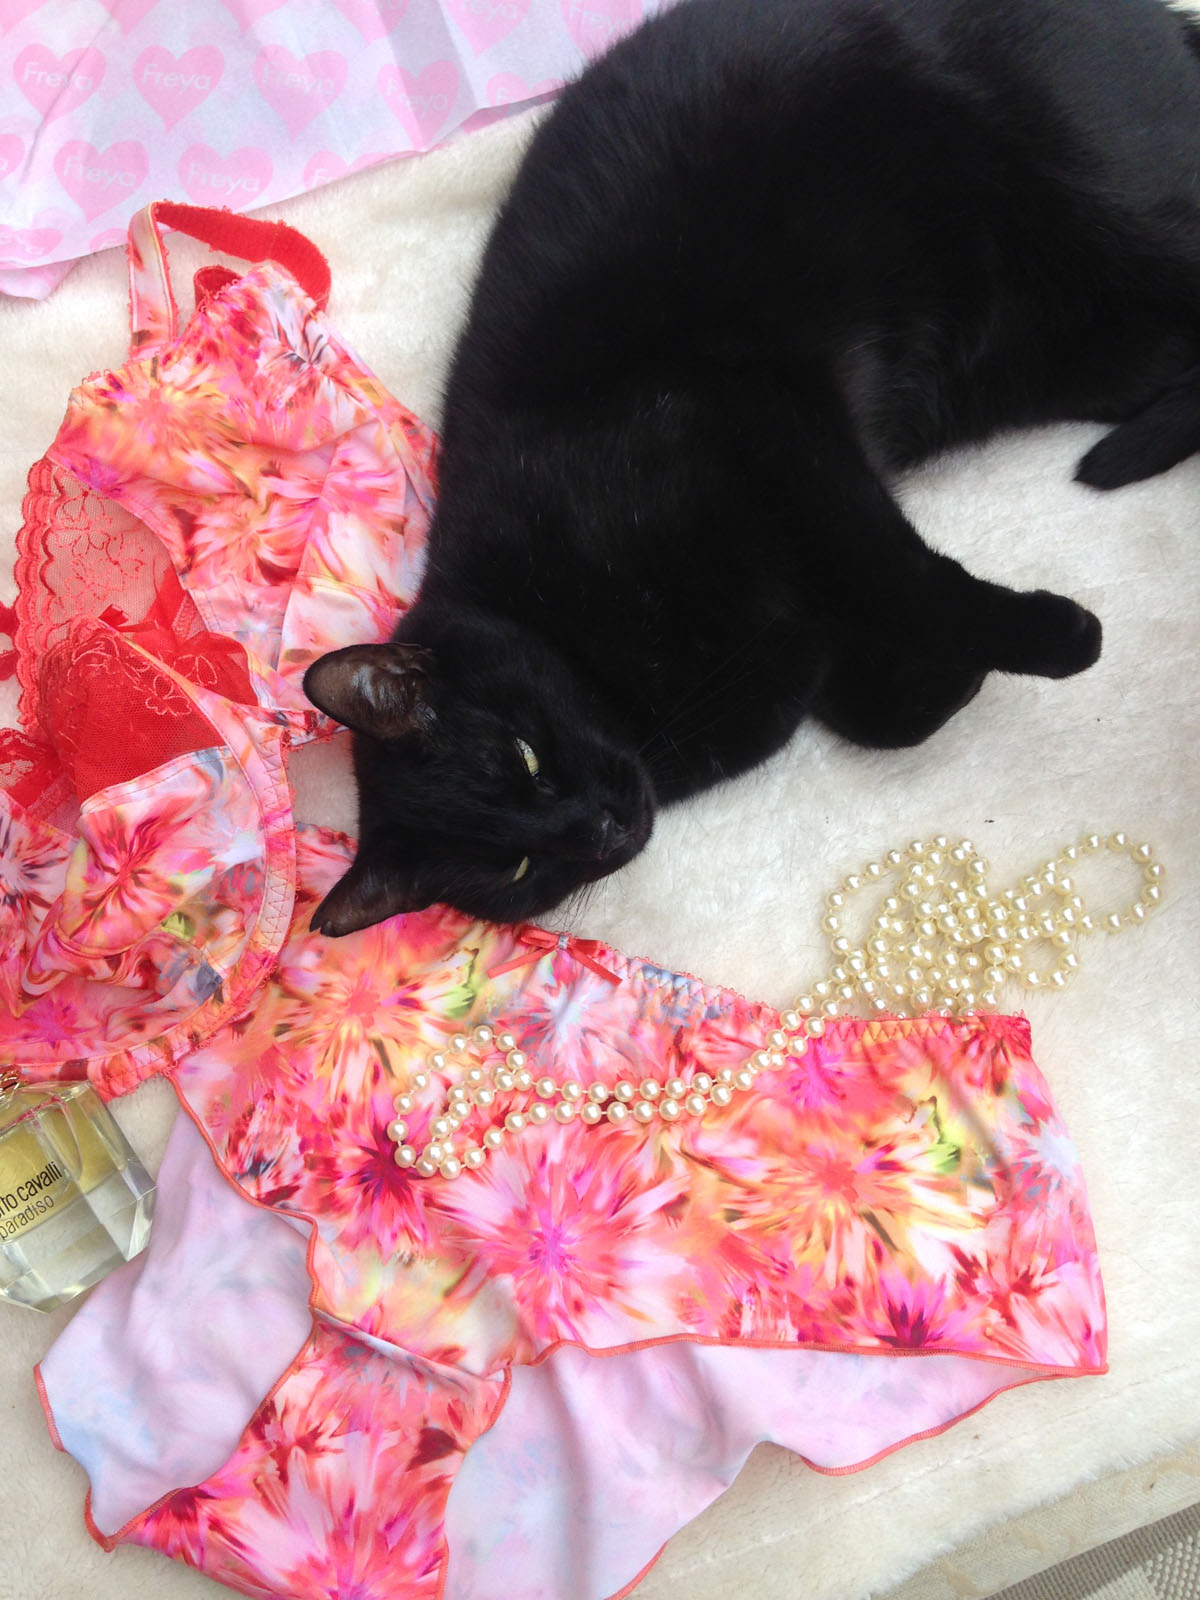 cat with Freya lingerie